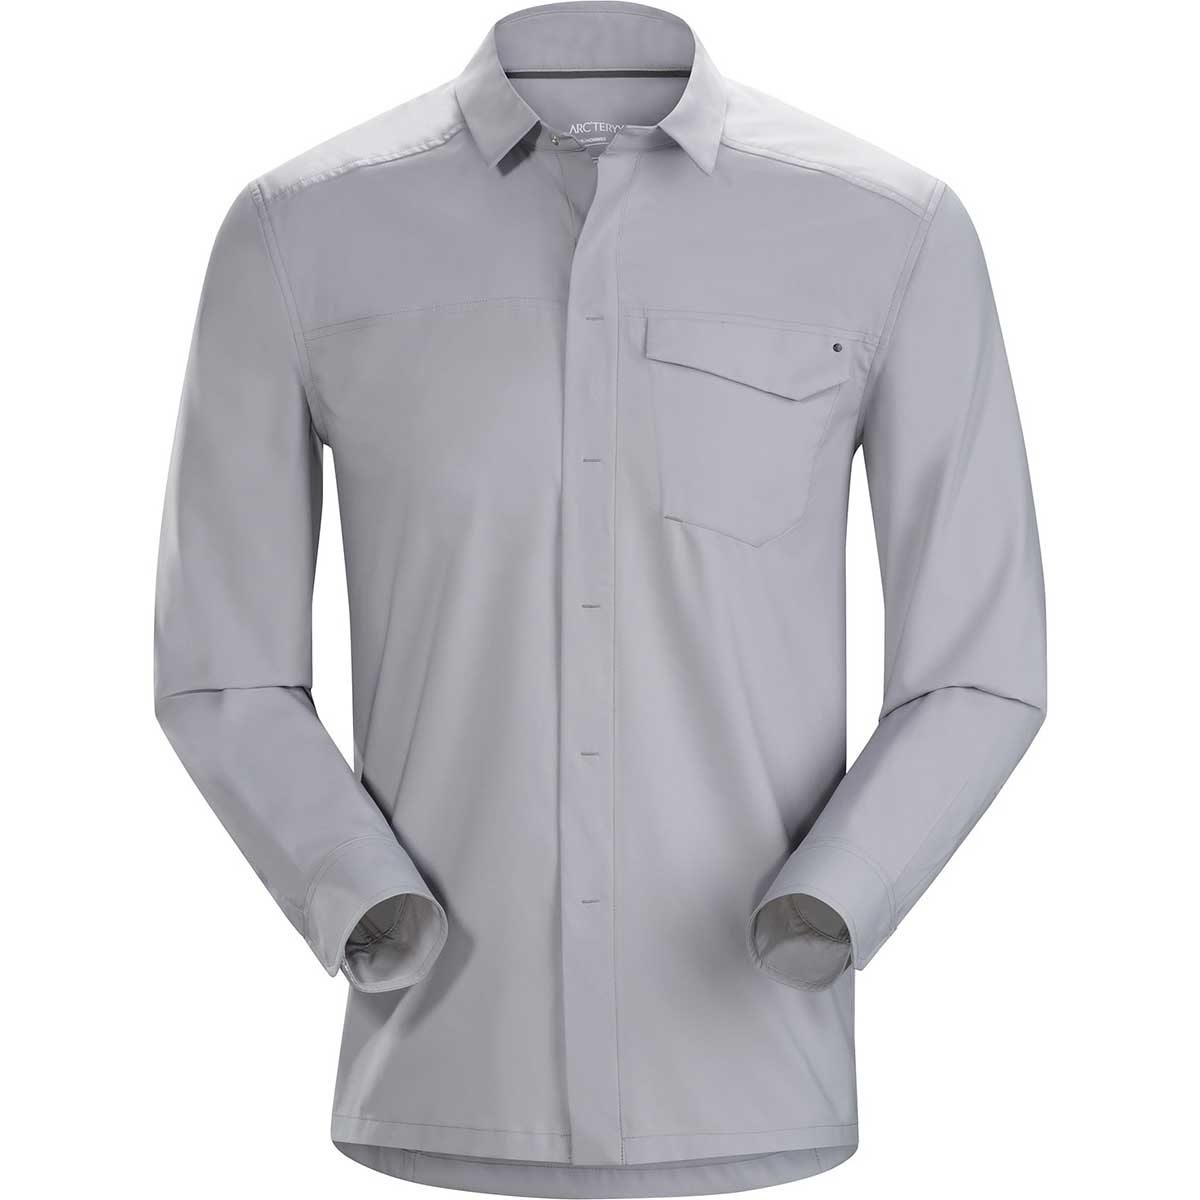 Arcteryx men's Skyline Long Sleeve Shirt in Pegasus front view